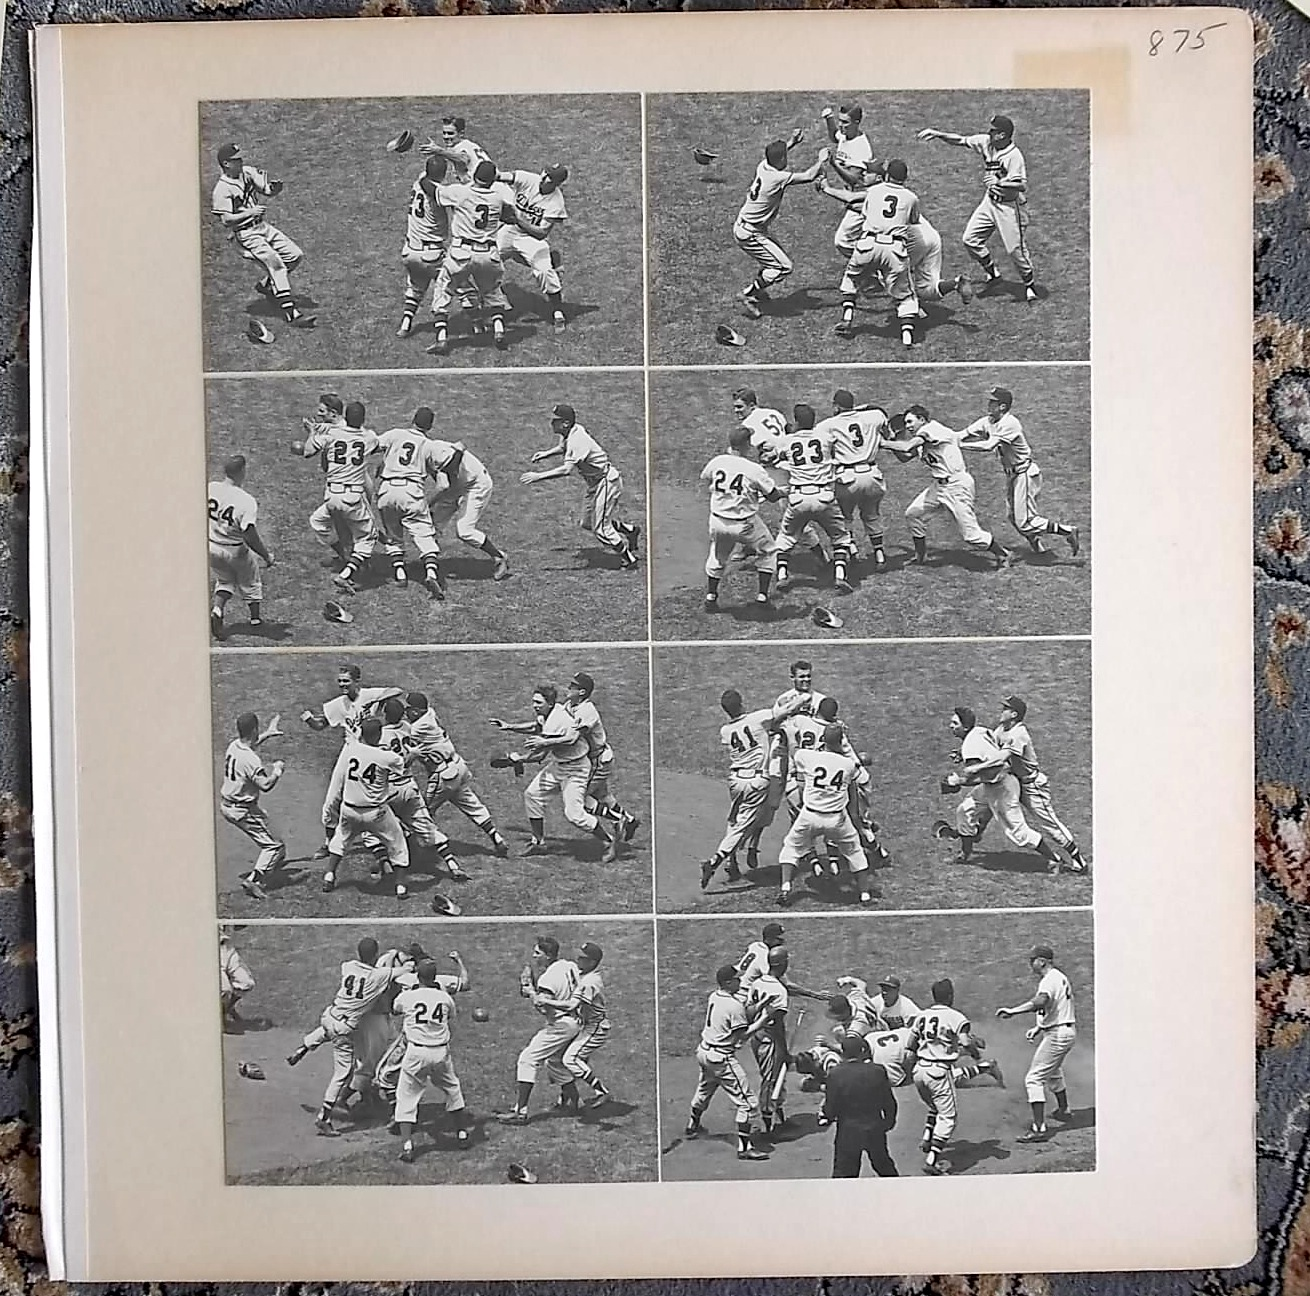 The same fight as shown earlier.  Some of the boards have composite images, with individual photos from a scene grouped together.